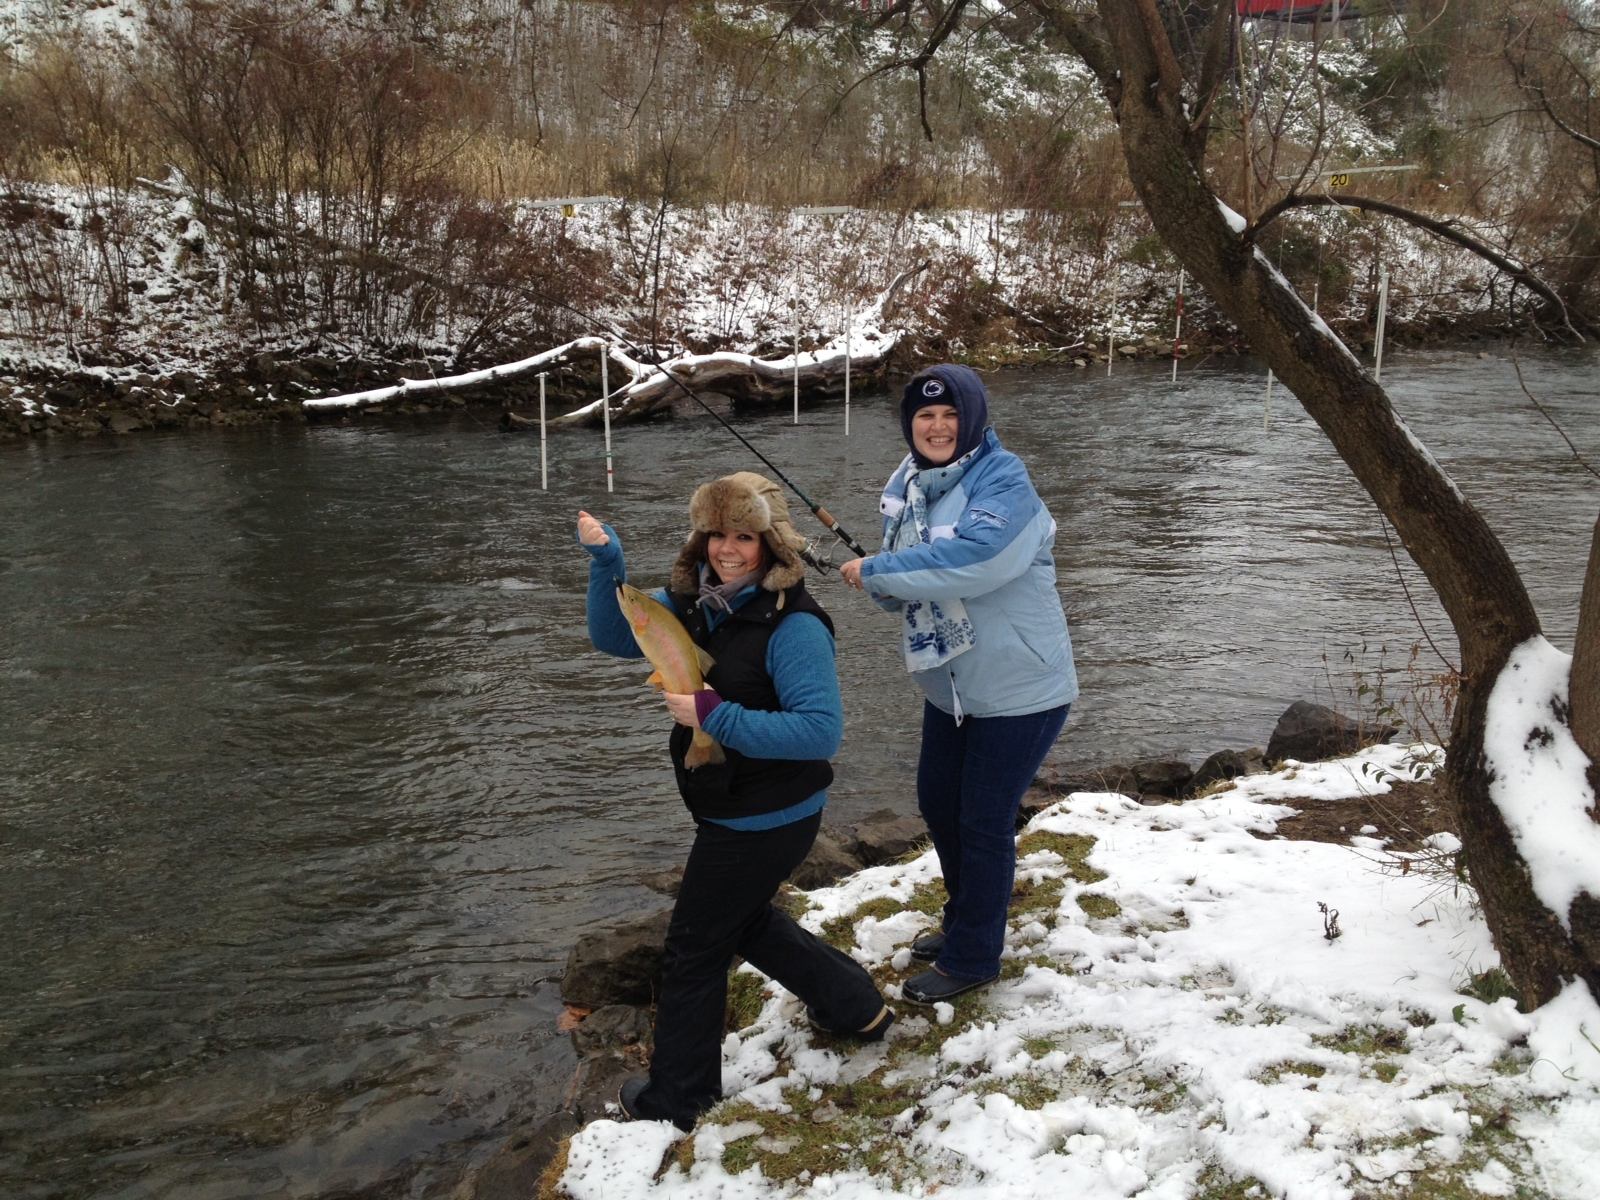 Northern pennsylvania fishing report december 18 2014 for Trout fishing pa